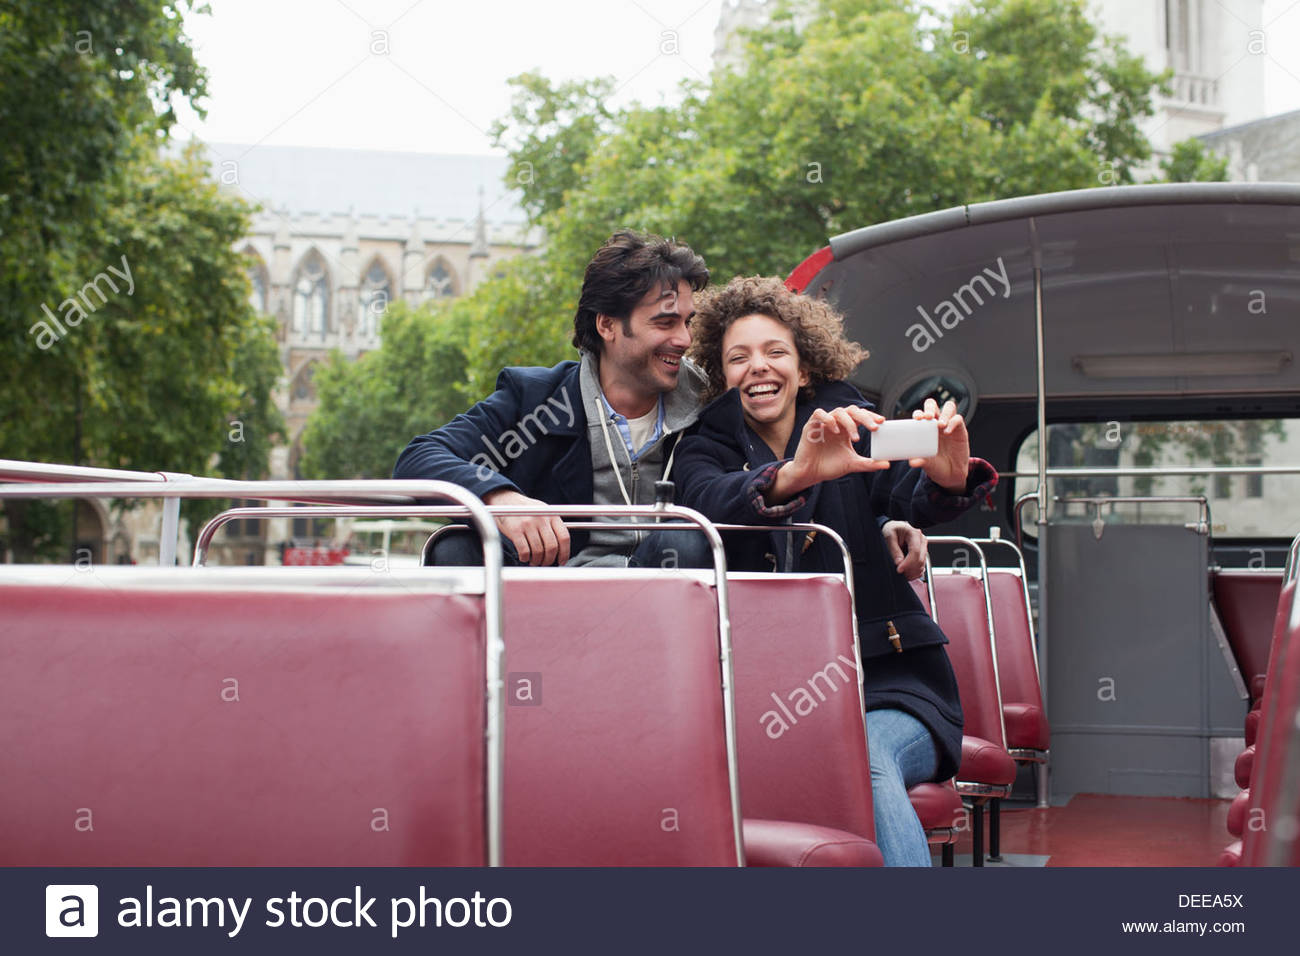 Couple with digital camera riding double decker bus near Big Ben clocktower in London - Stock Image